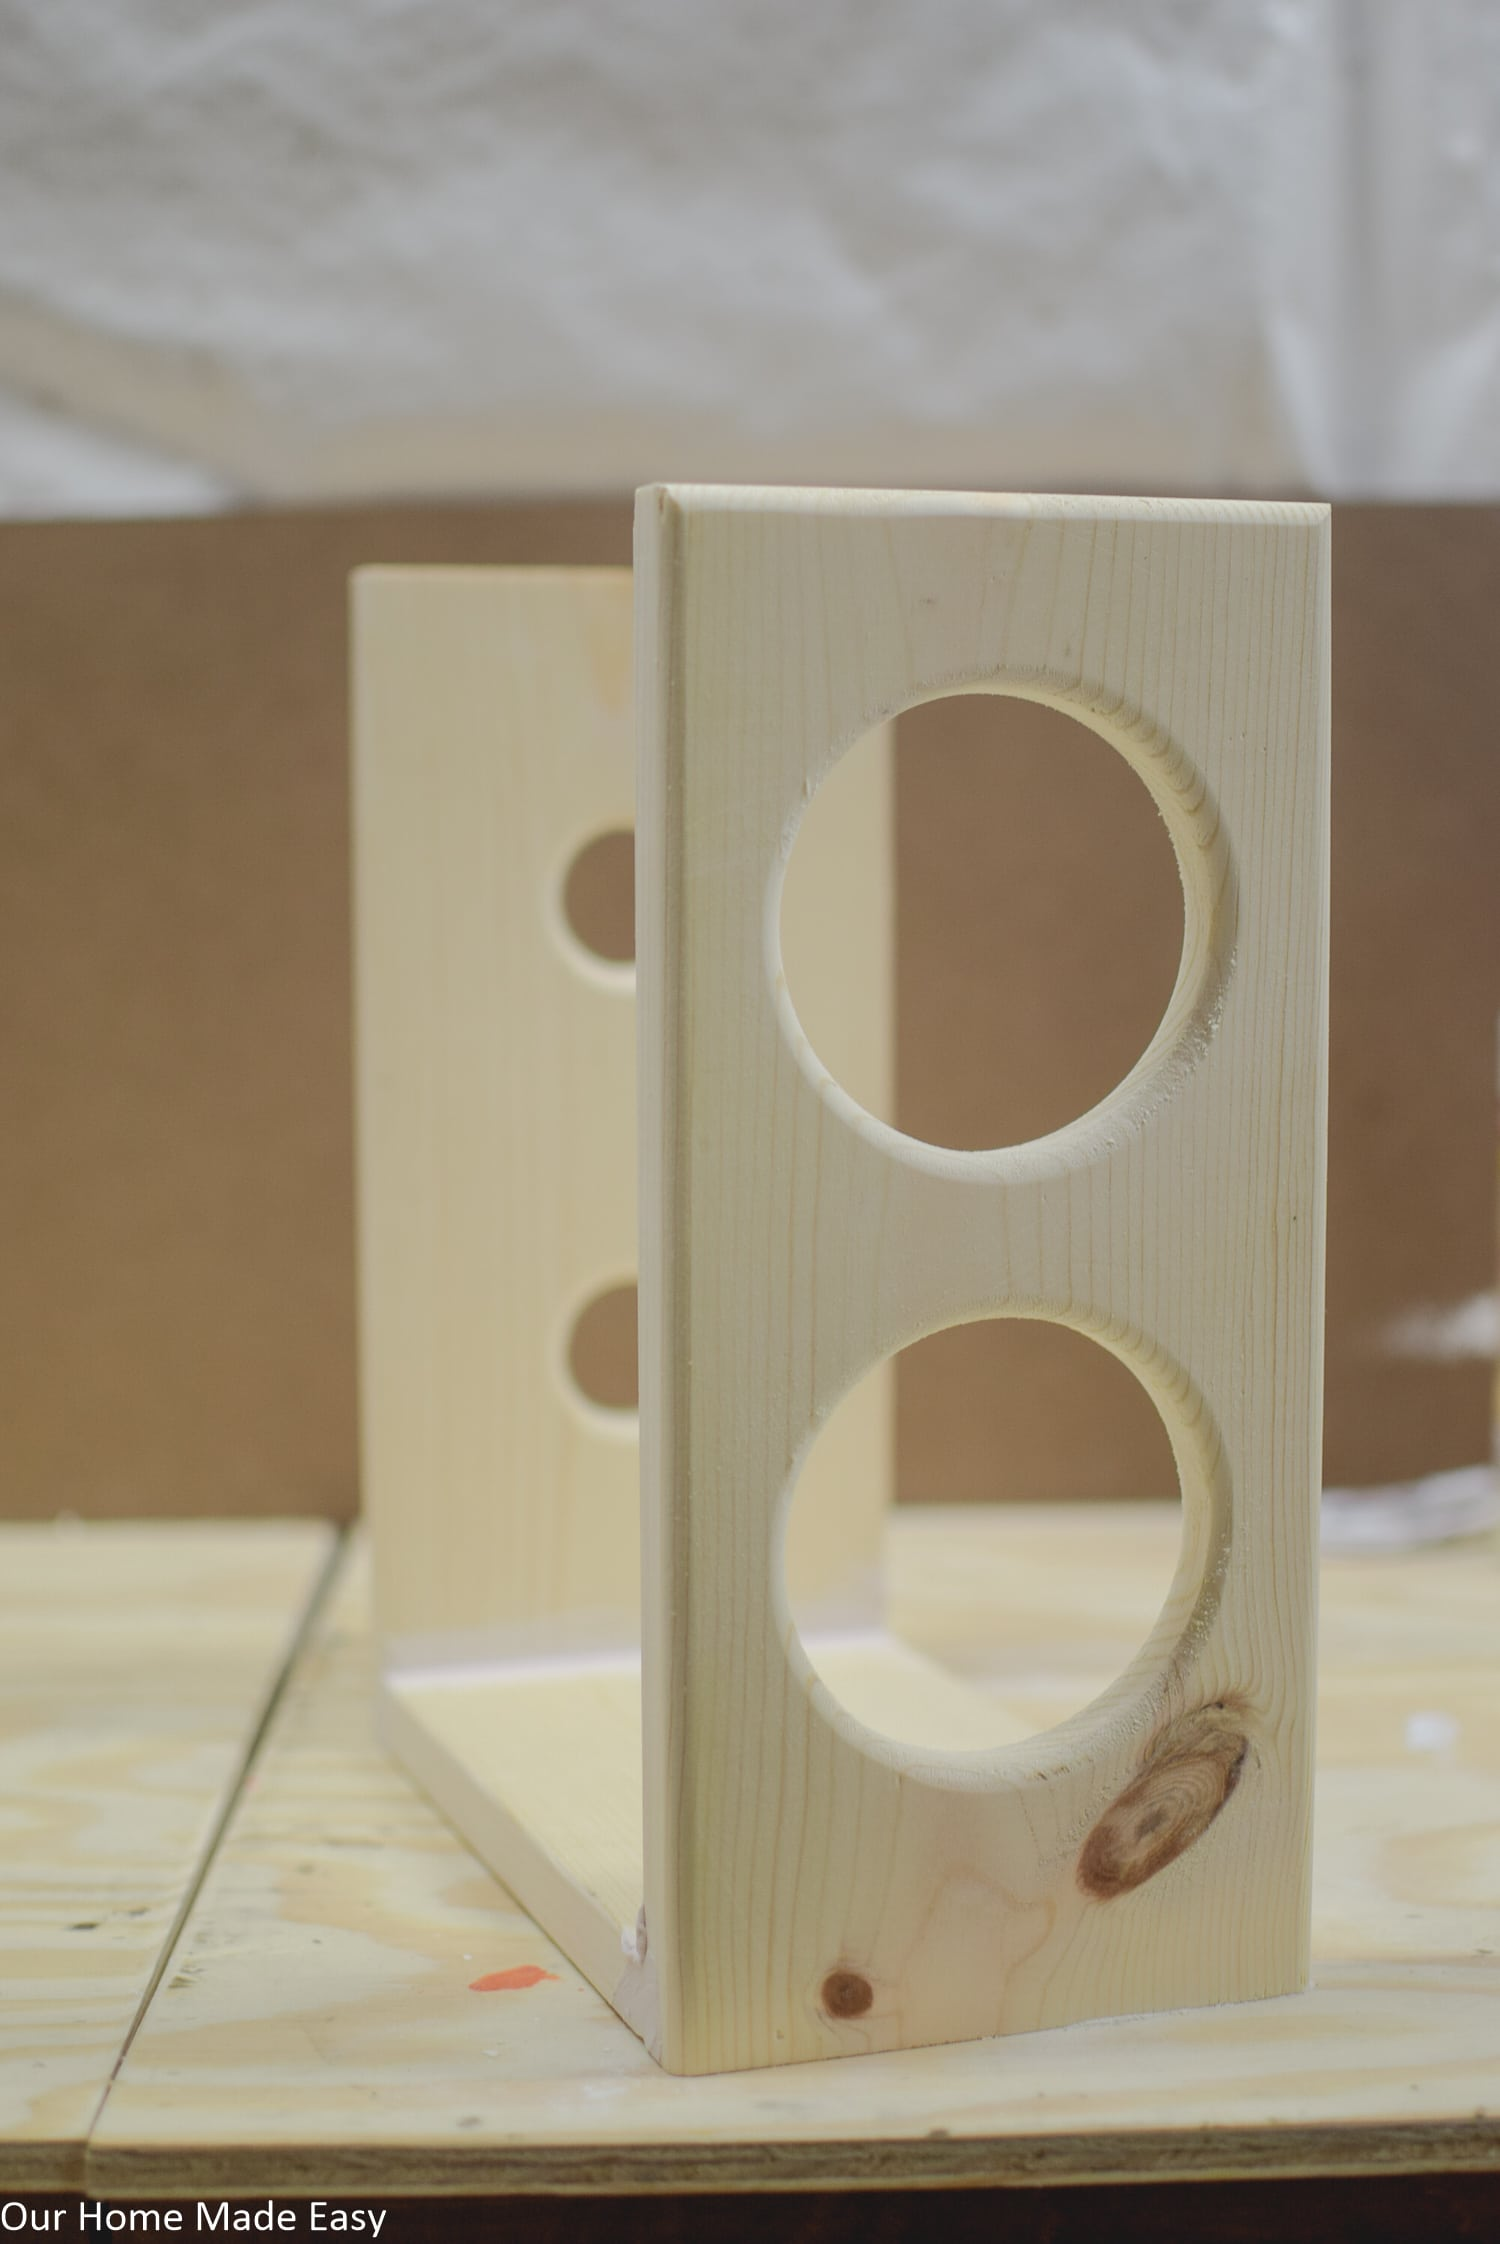 Attach the two boards to the wine rack base, making sure the smaller holes and larger holes are even